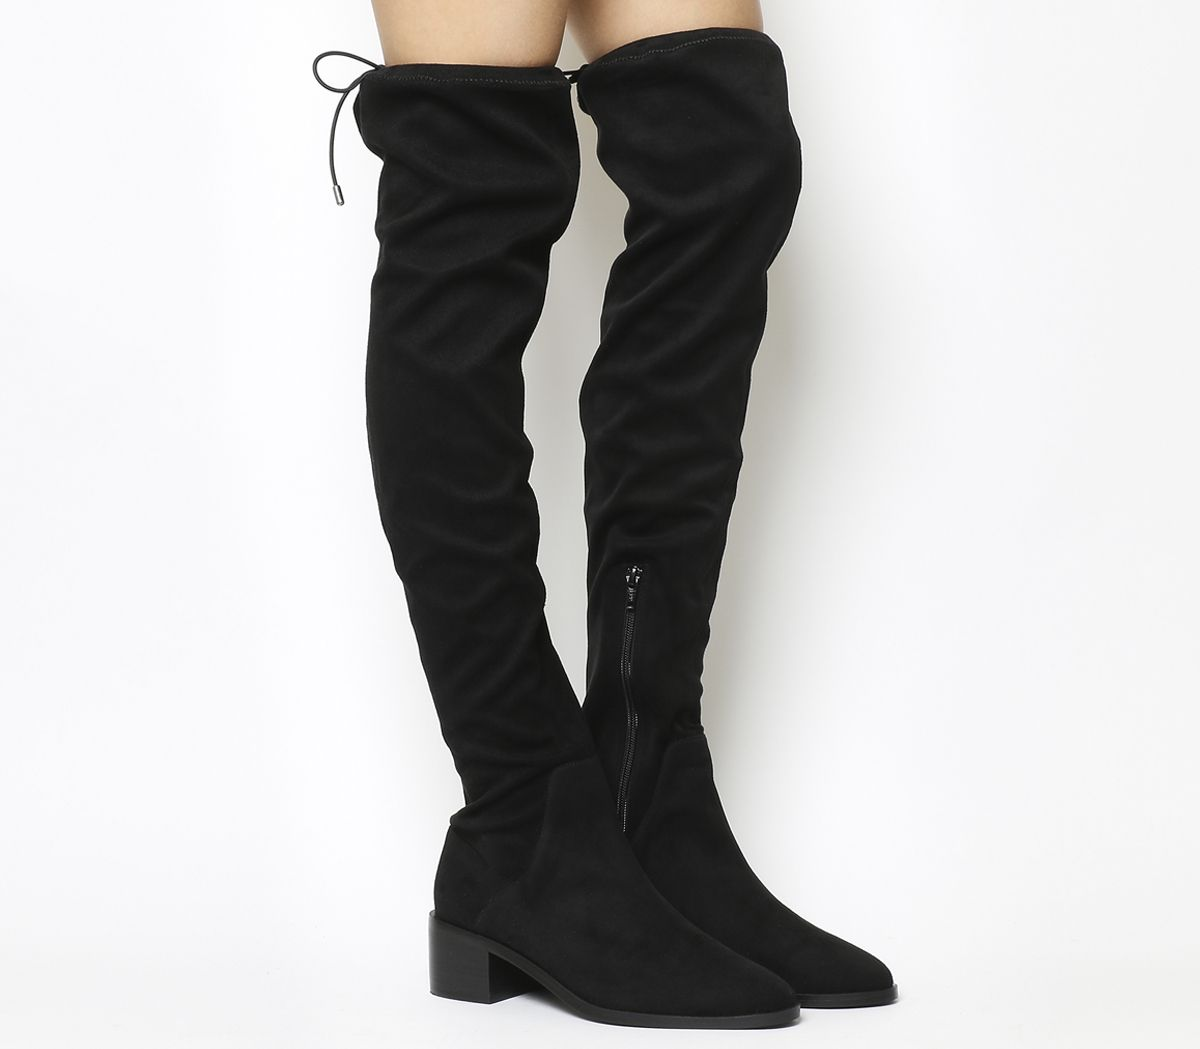 bd386d46215 Office Karma Over The Knee Boots Black - Knee Boots